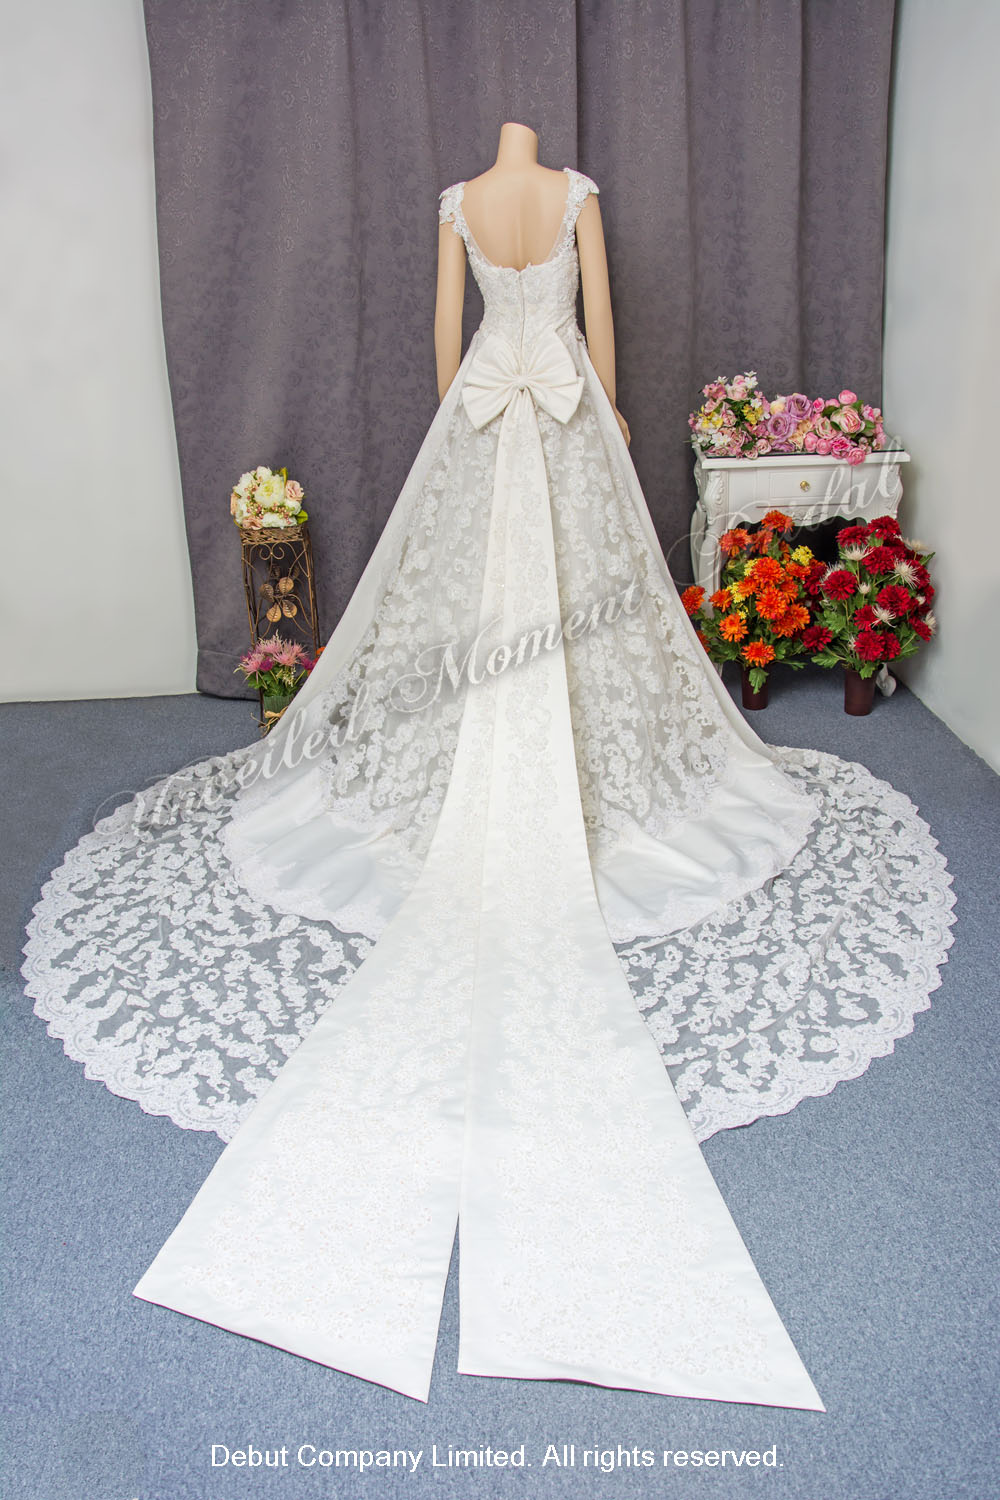 Strapless, A-line wedding gown, lace appliques, and an embellished lace chapel train and accentuated bow. 無肩帶, 蝴蝶結拖尾, 蕾絲釘珠花邊, A-line長拖尾婚紗